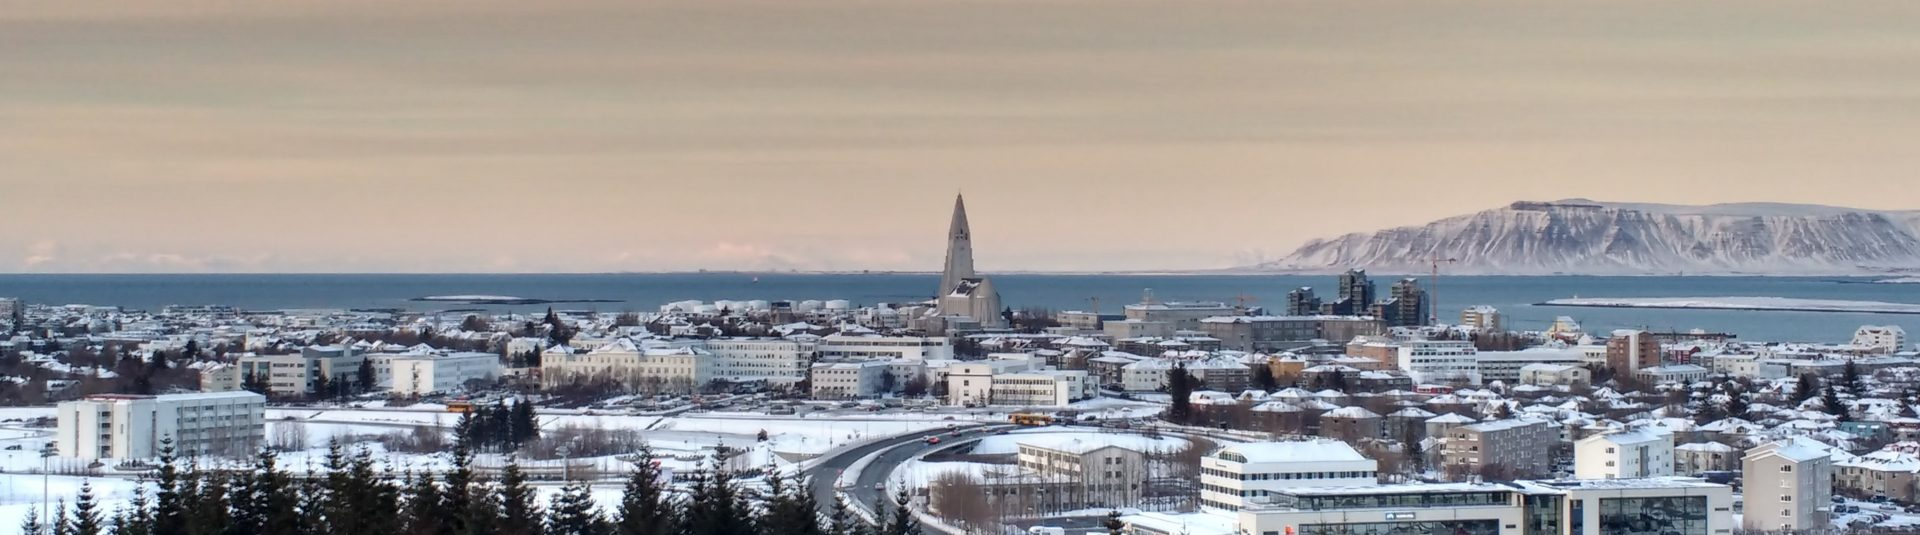 """<a href=""""http://www.directoryofdestinations.com/country/iceland/"""" rel=""""tag"""">Iceland</a>"""